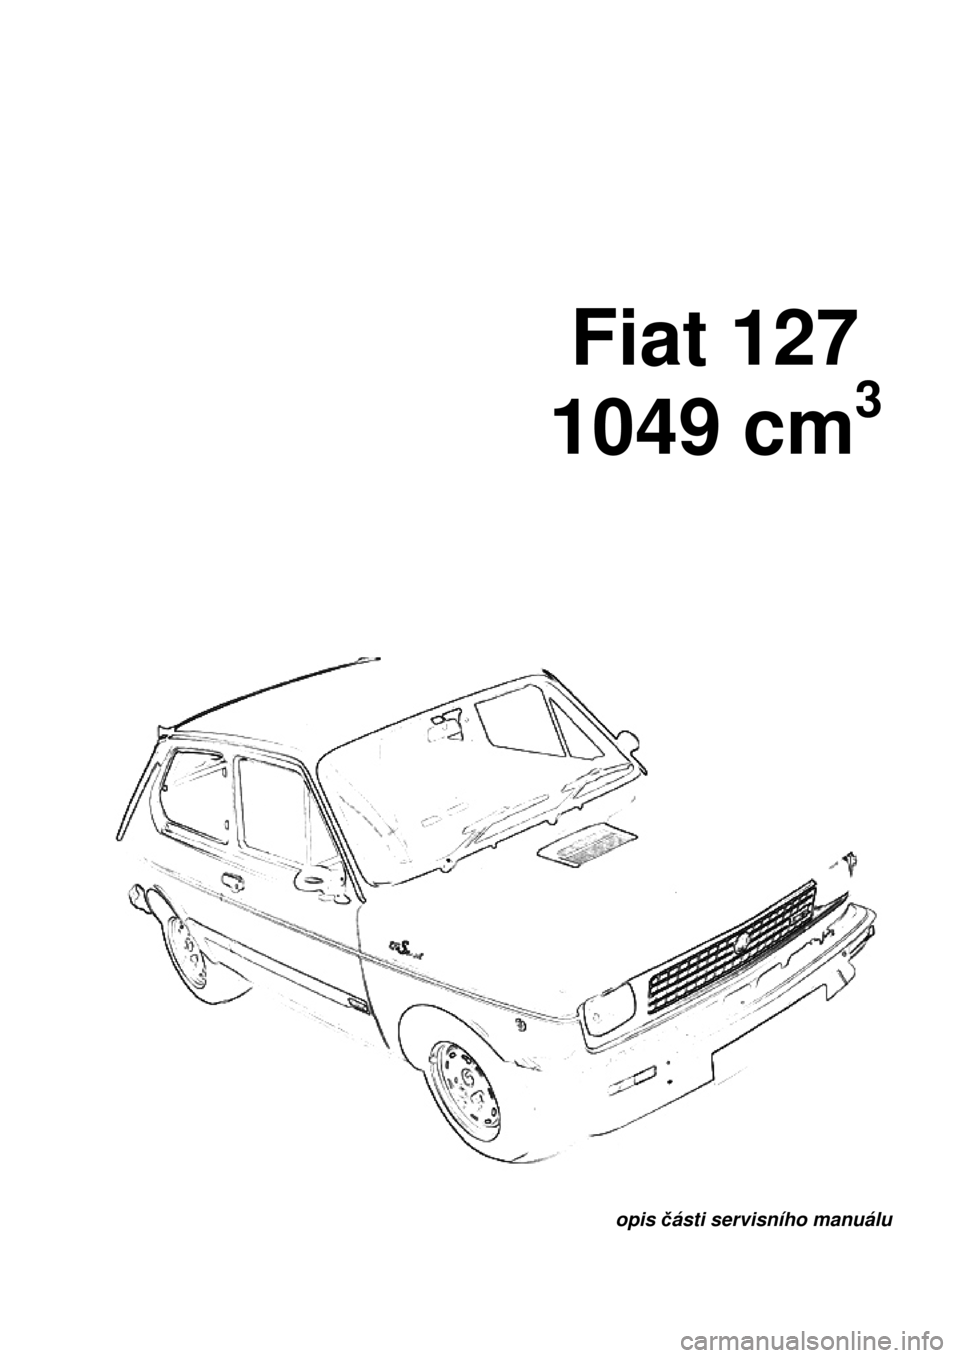 FIAT 127 1978 2.G Workshop Manual, Page 1